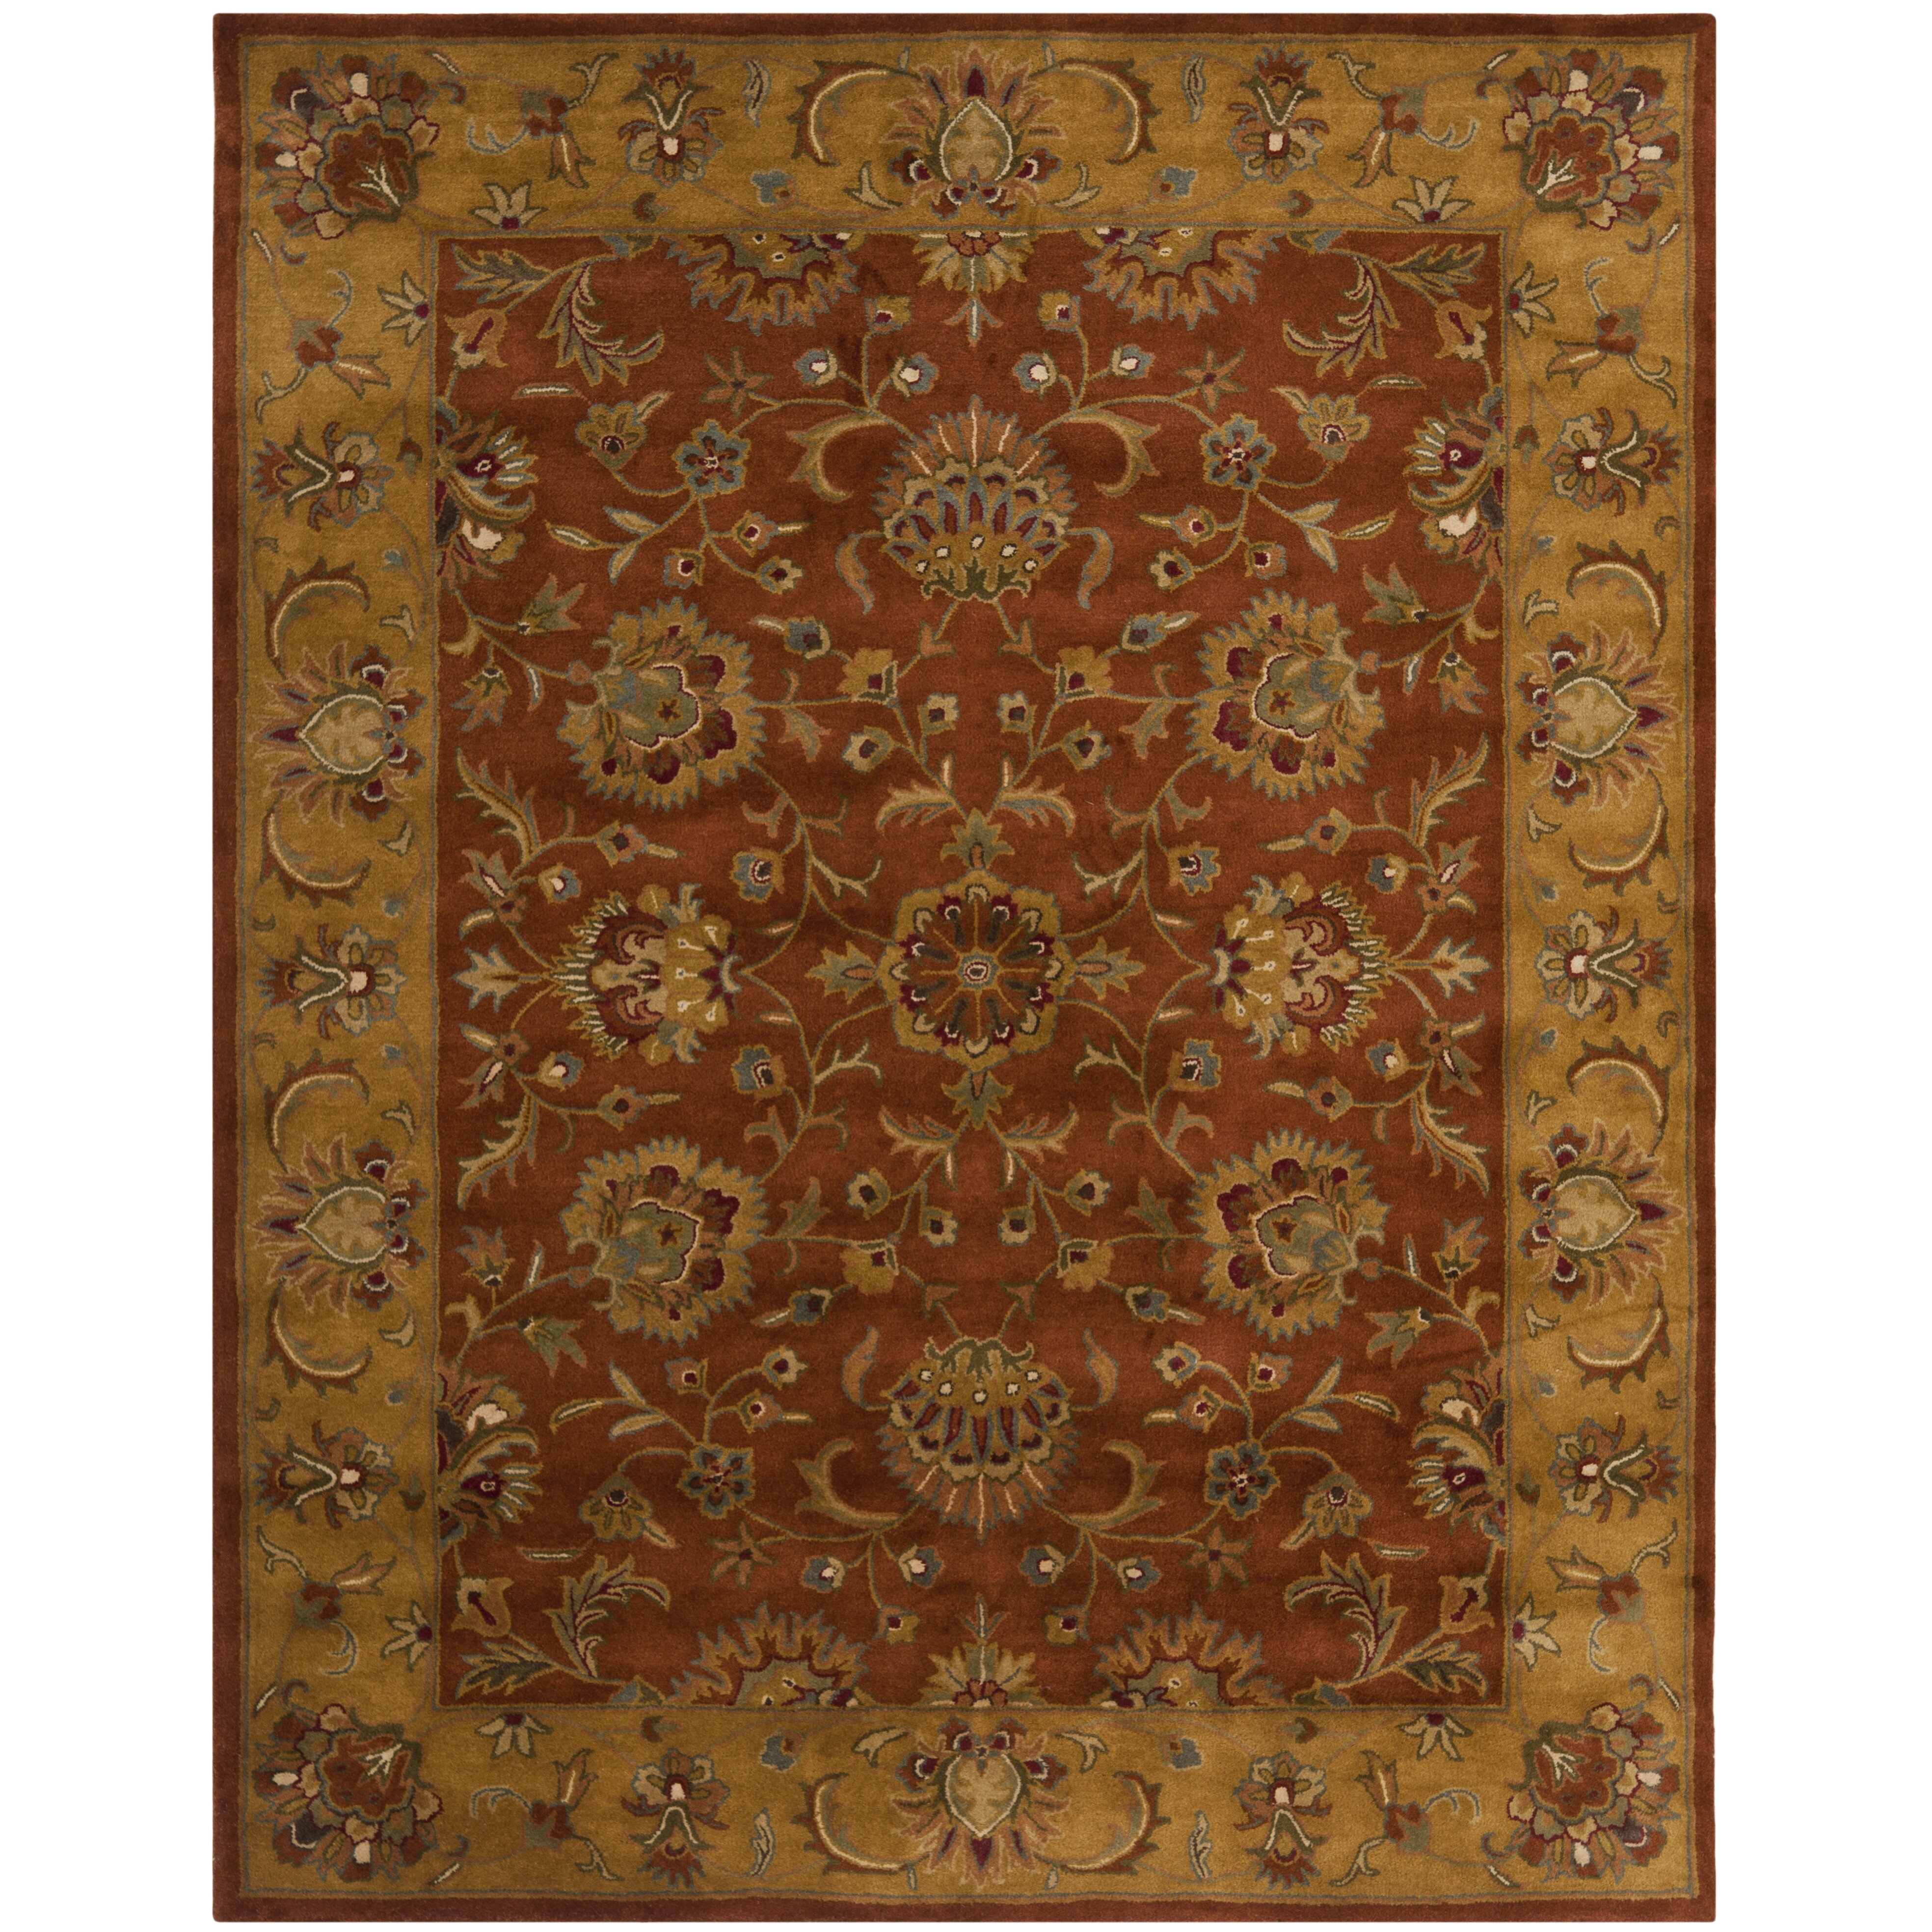 Dog Eating Wool Rug: Astoria Grand Balthrop Brown/Yellow Area Rug